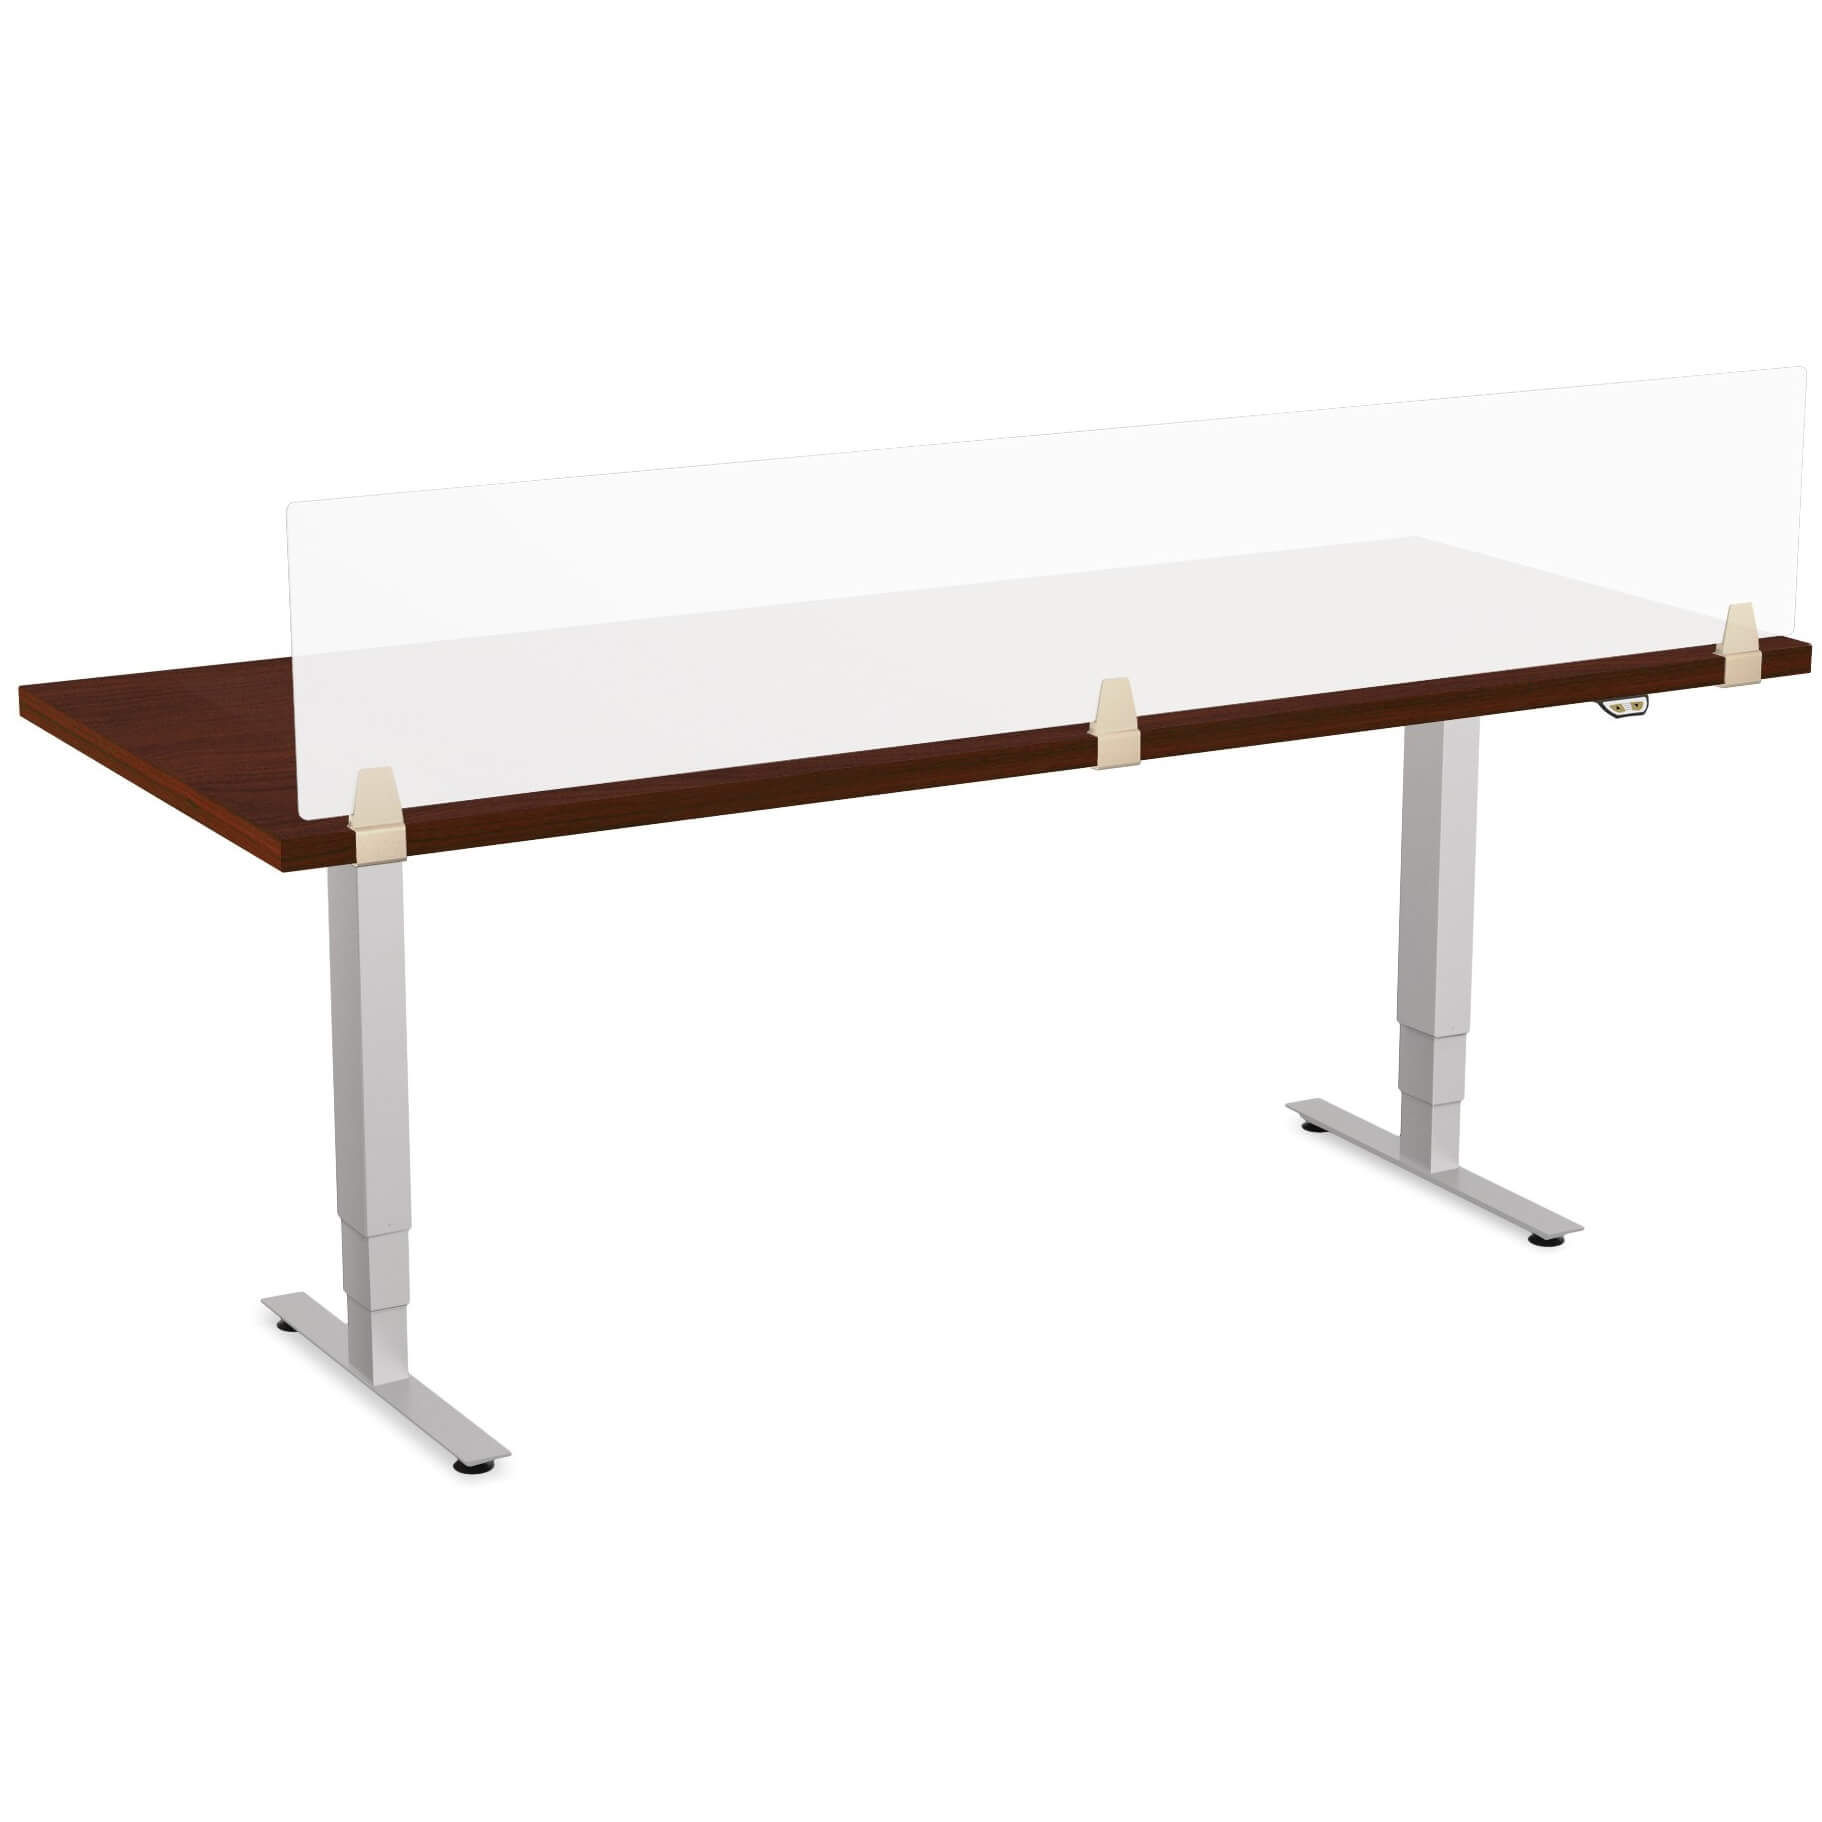 sit-stand-desk-height-adjustable-office-table-1-2-3.jpg